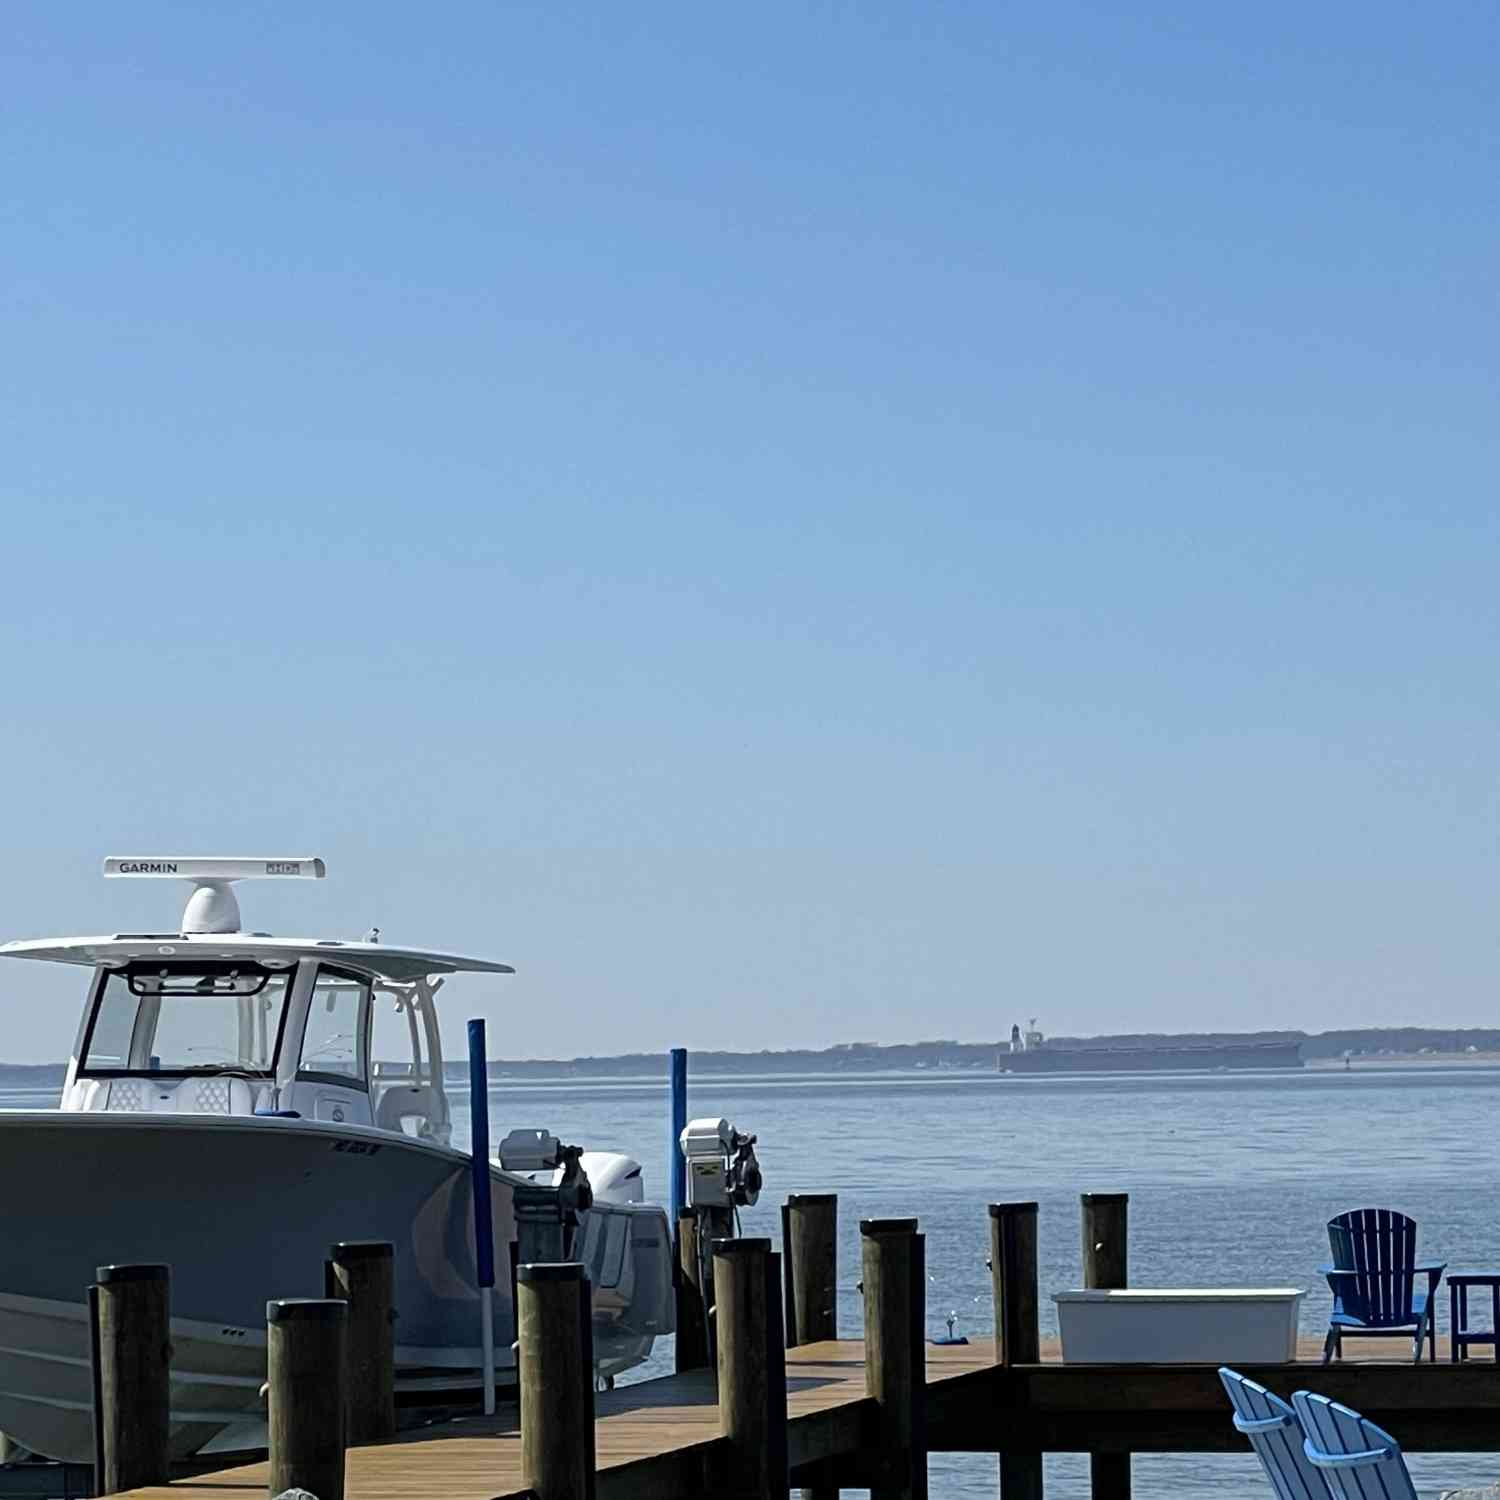 Title: Simply a pleasure - On board their Sportsman Open 352 Center Console - Location: Kent Island, MD. Participating in the Photo Contest #SportsmanApril2021